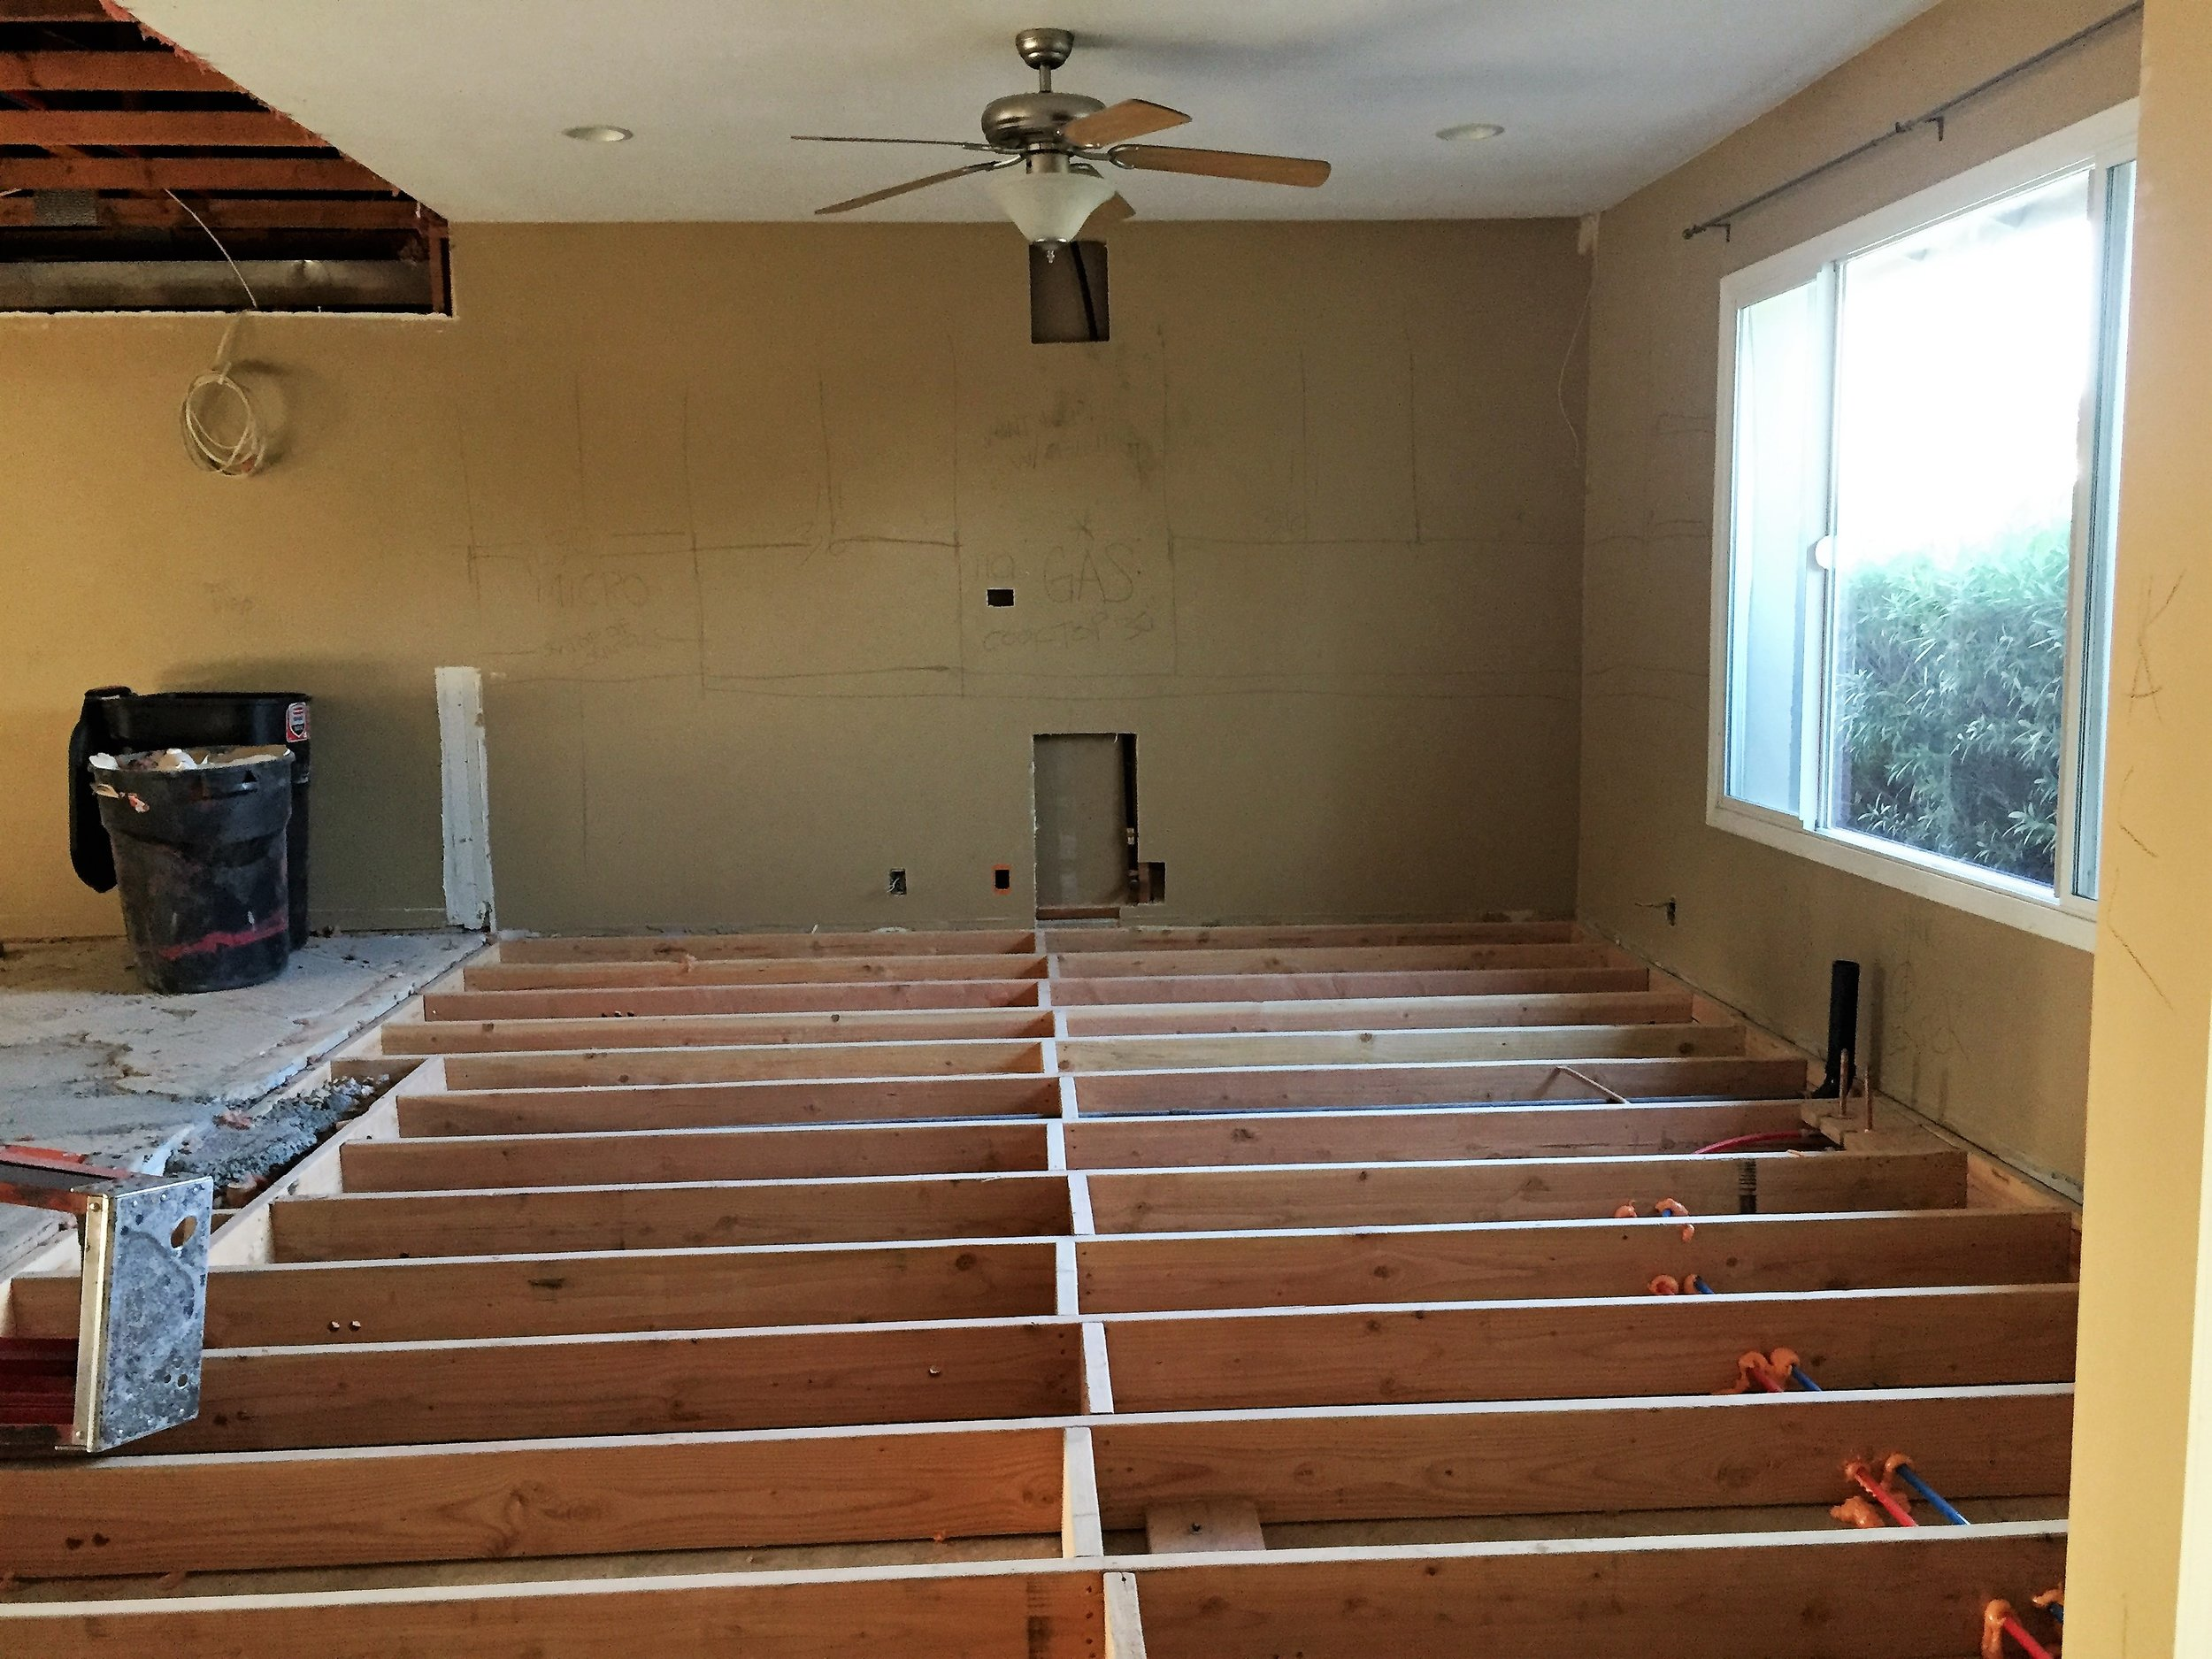 After demo: Future kitchen space - you can see the layout of cabinets, stove, oven, etc. written on the wall. The floor is being filled in!